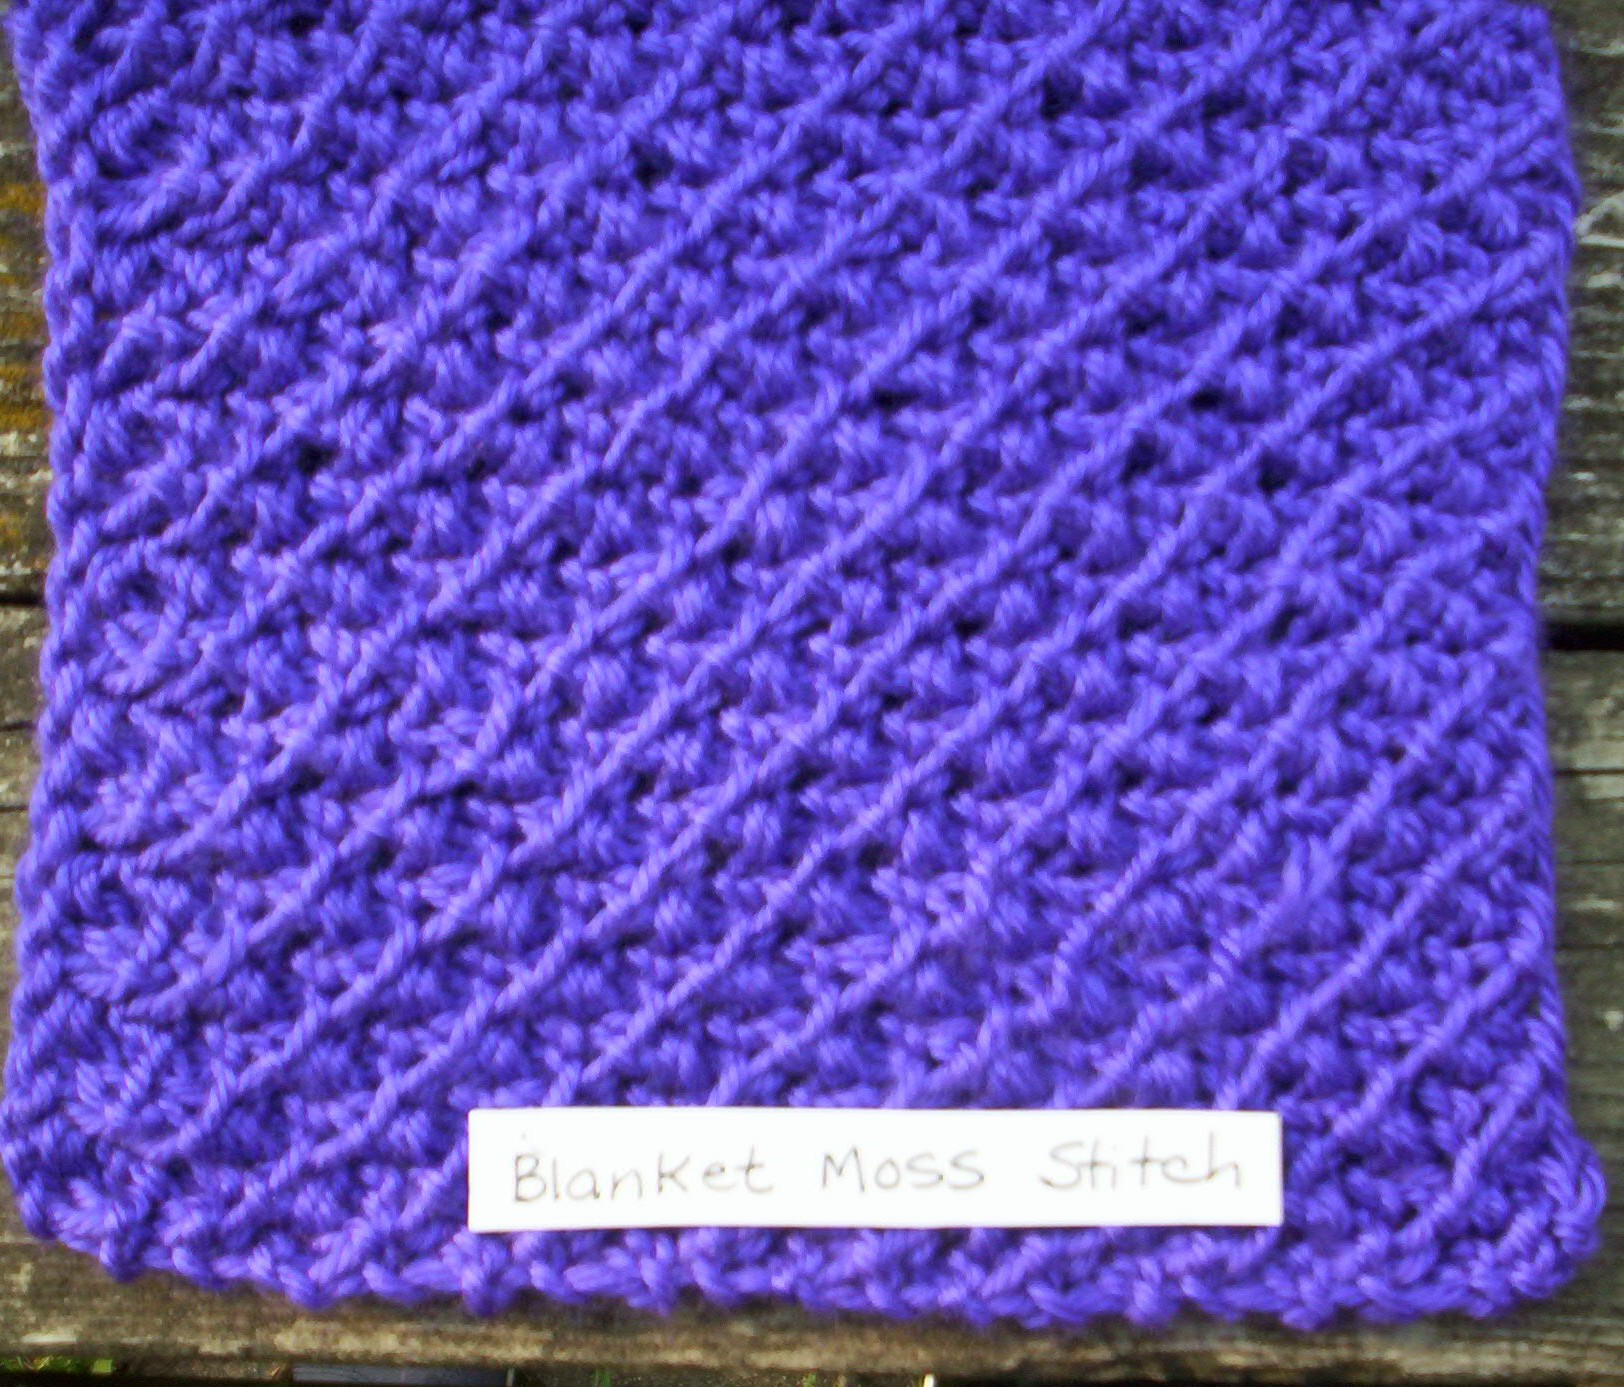 Knitting Patterns Squares : 100_0800.jpg